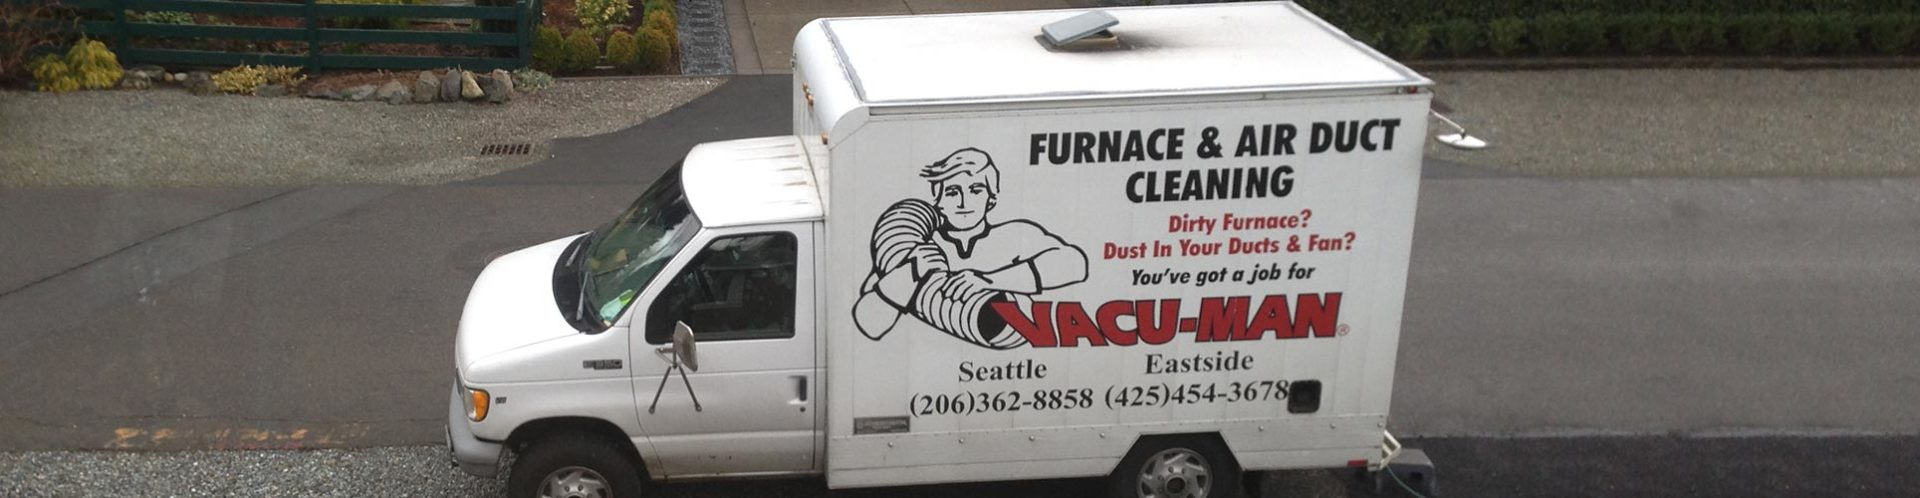 Vacu Man Furnace Amp Air Duct Cleaning Duct Cleaning Seattle